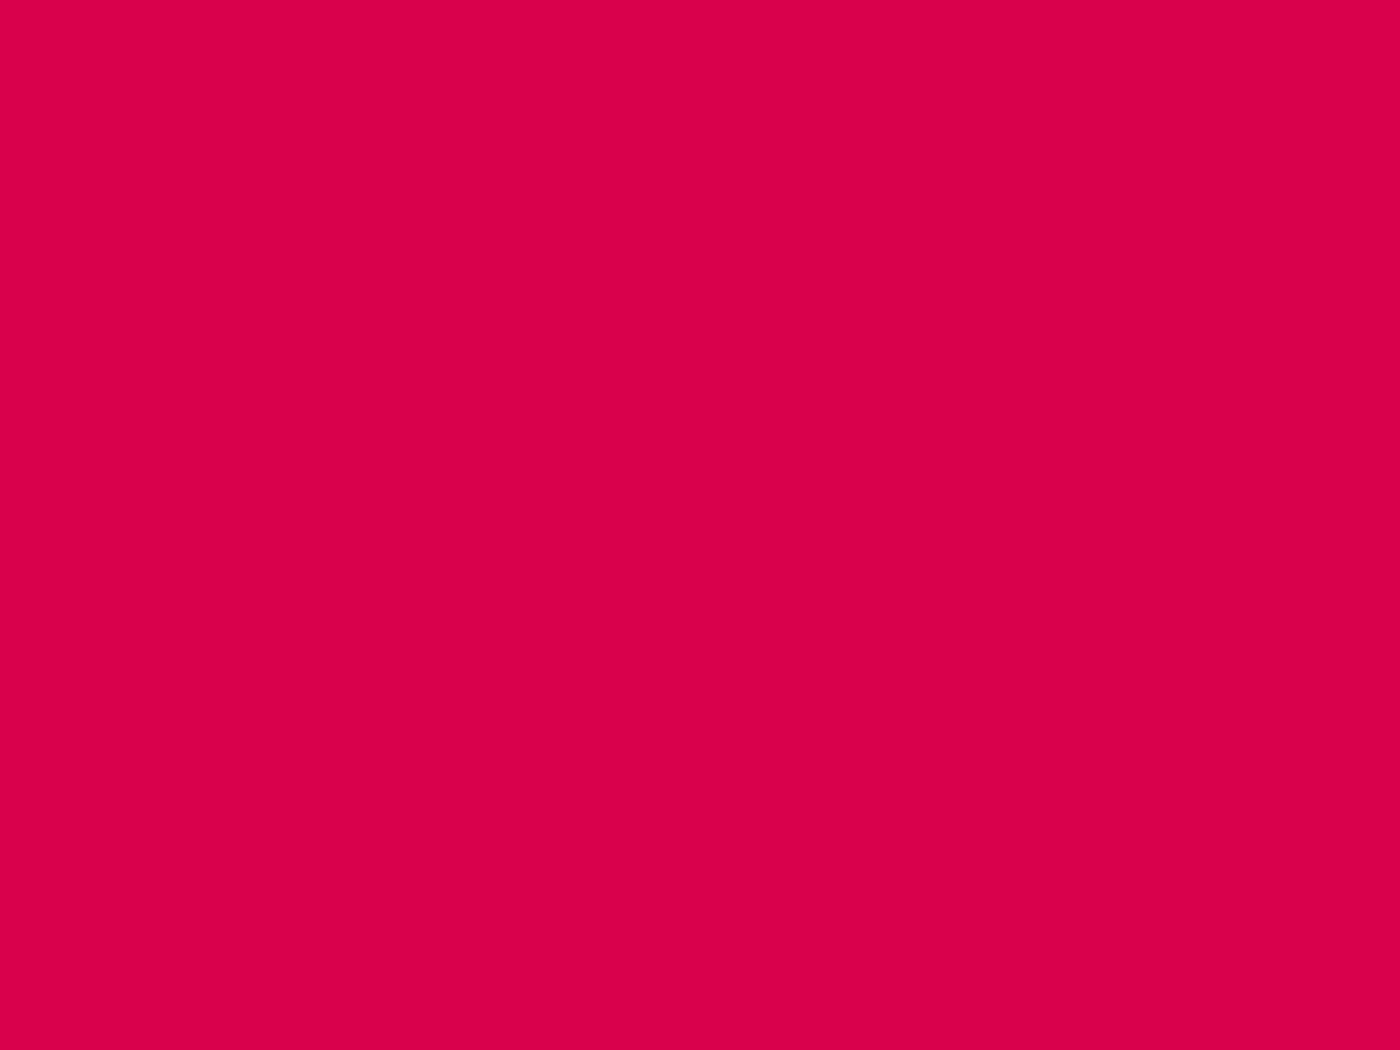 1400x1050 UA Red Solid Color Background